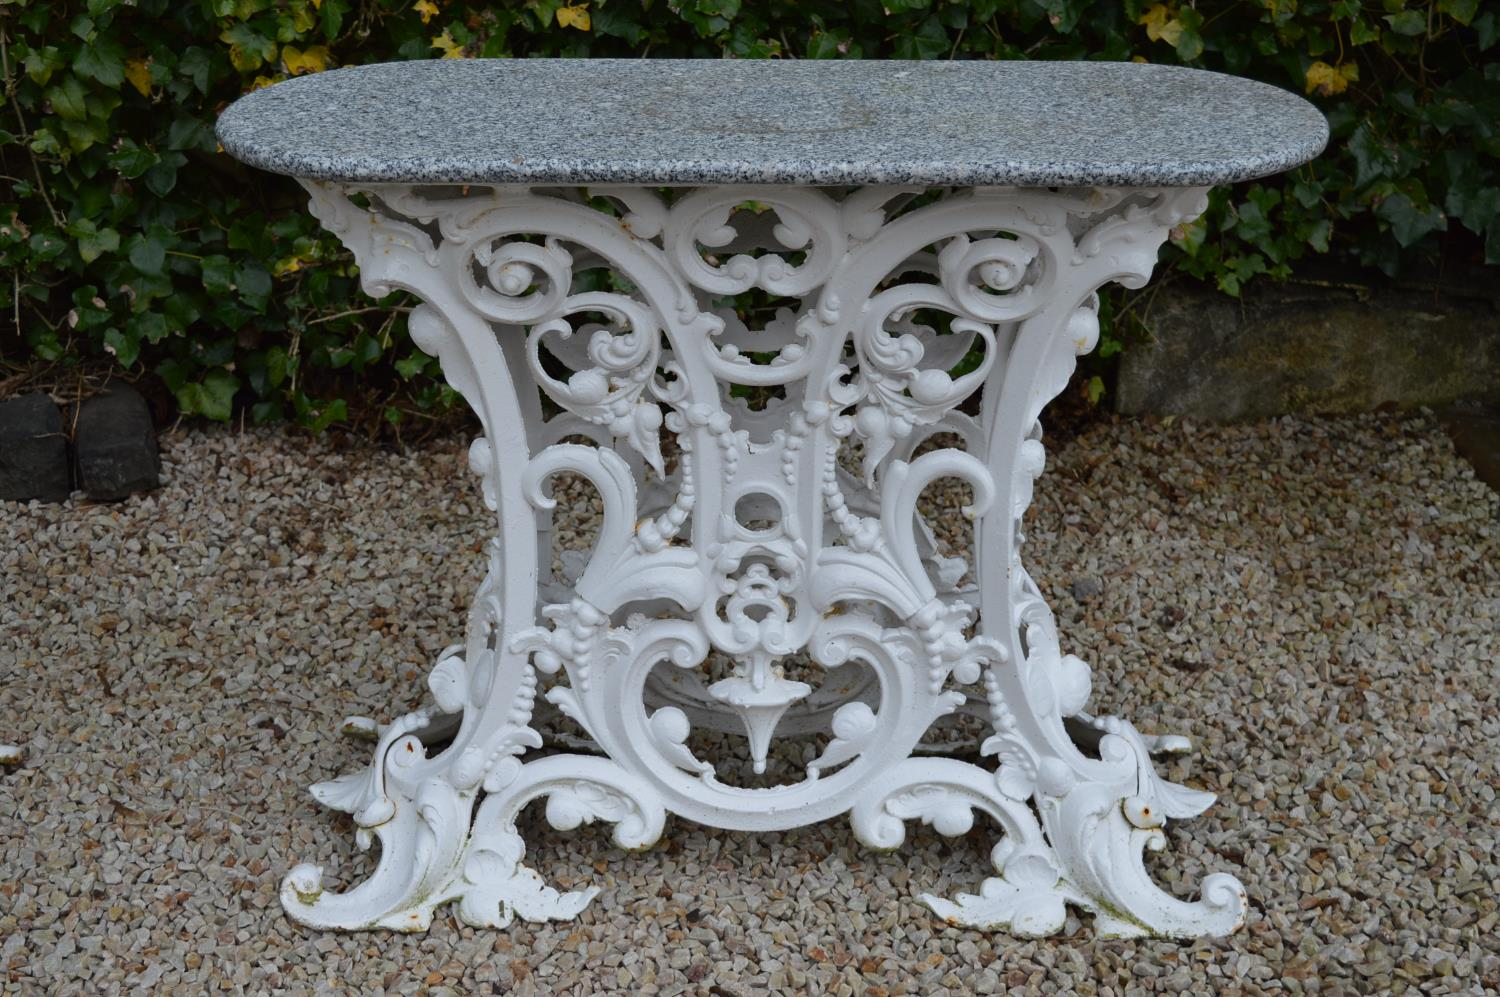 Cast iron garden table marble top in the Coalbrookdale style. 90W 75H 36D